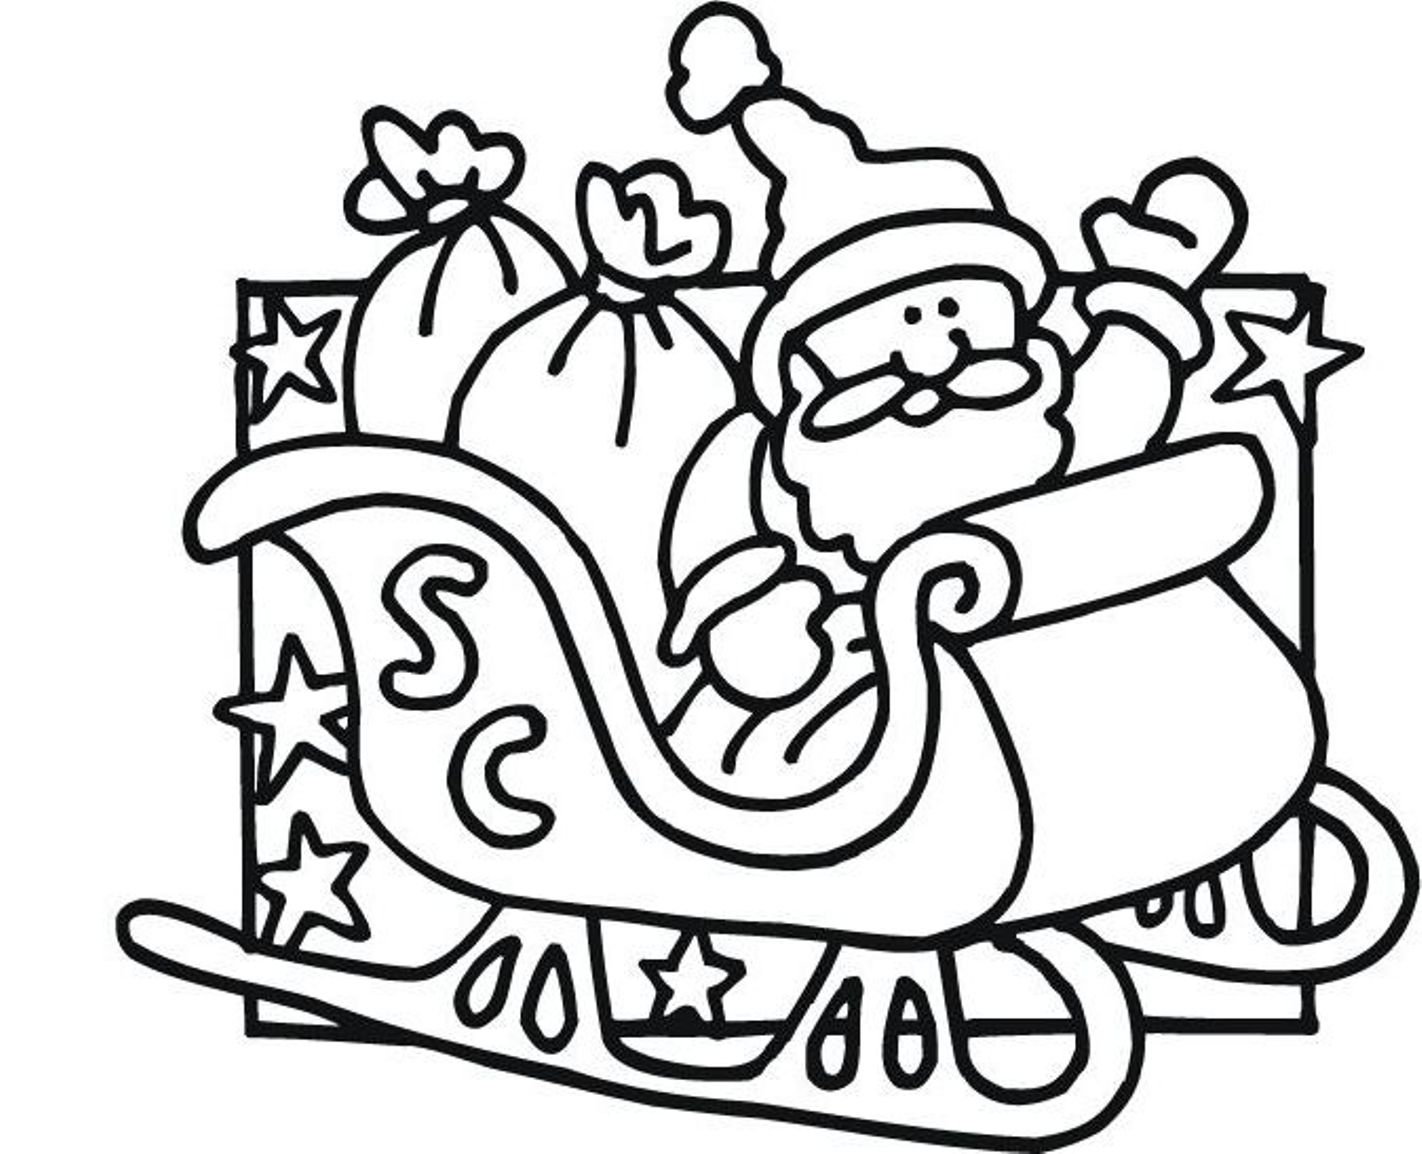 Awesome Fxpkys From Santa Claus Coloring Pages On With Hd